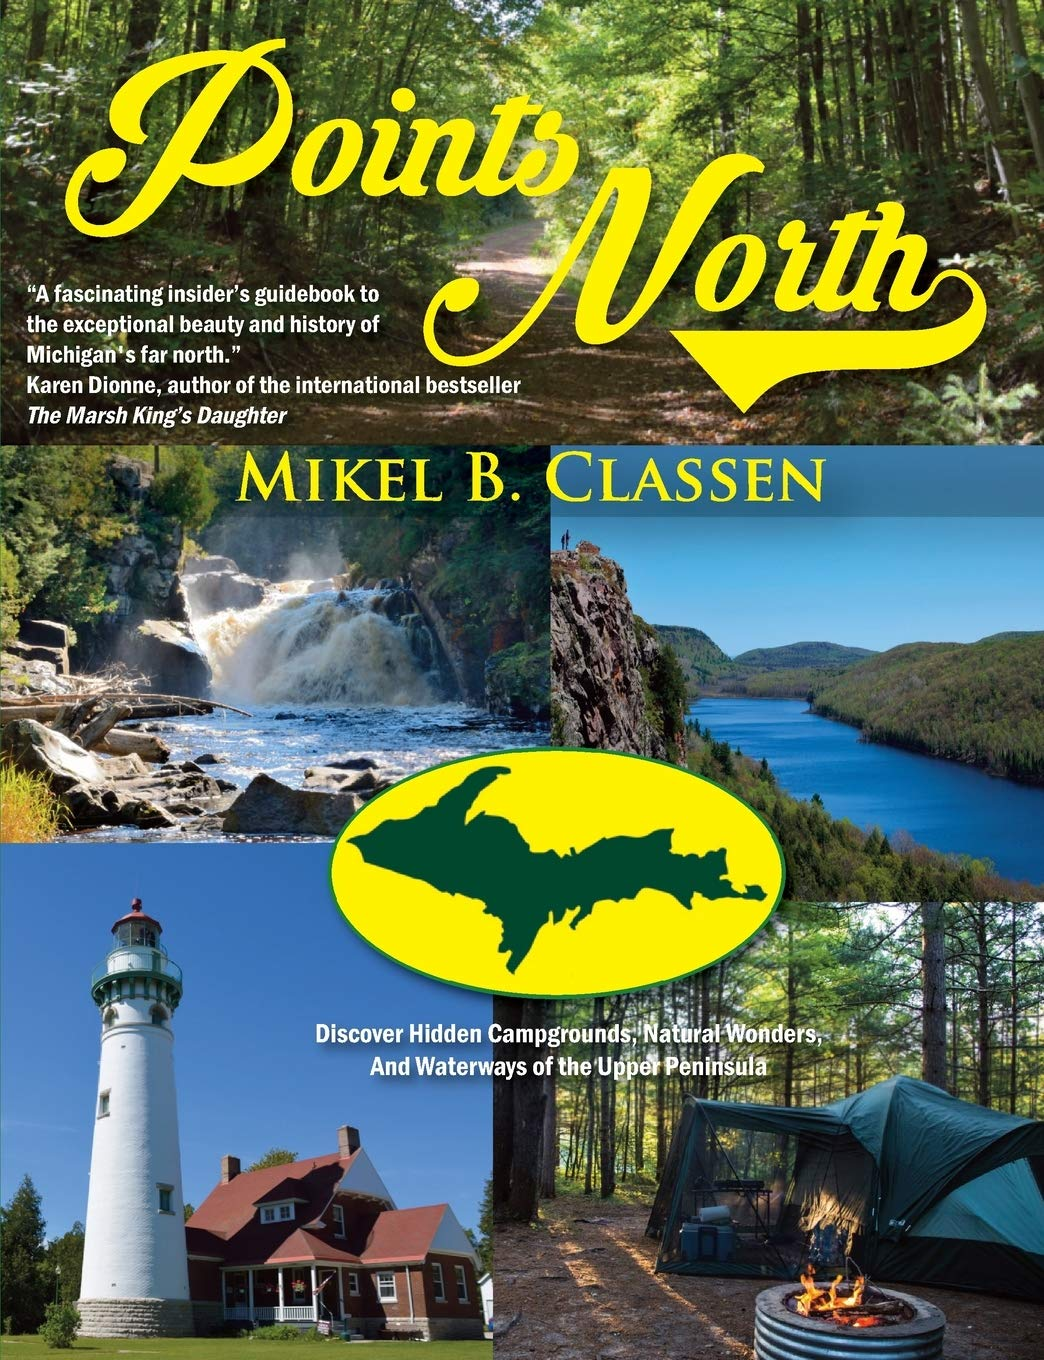 Points North: Discover Hidden Campgrounds, Natural Wonders, and Waterways of the Upper Peninsula